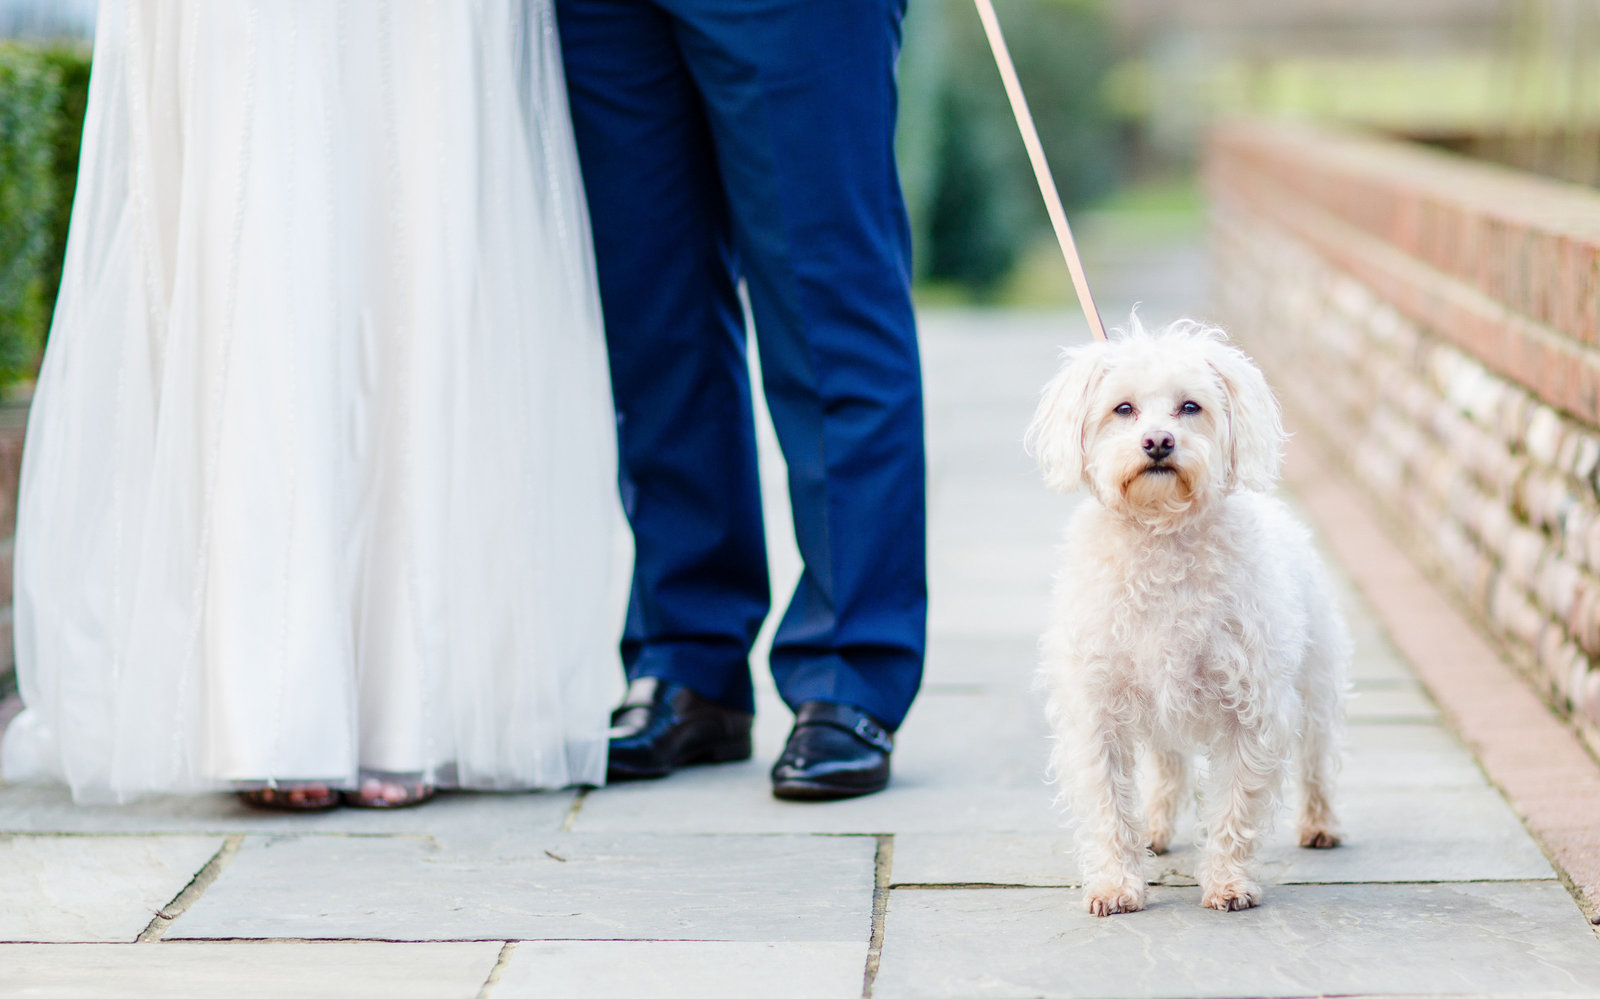 adorlee-086-wedding-photographer-chichester-west-sussex